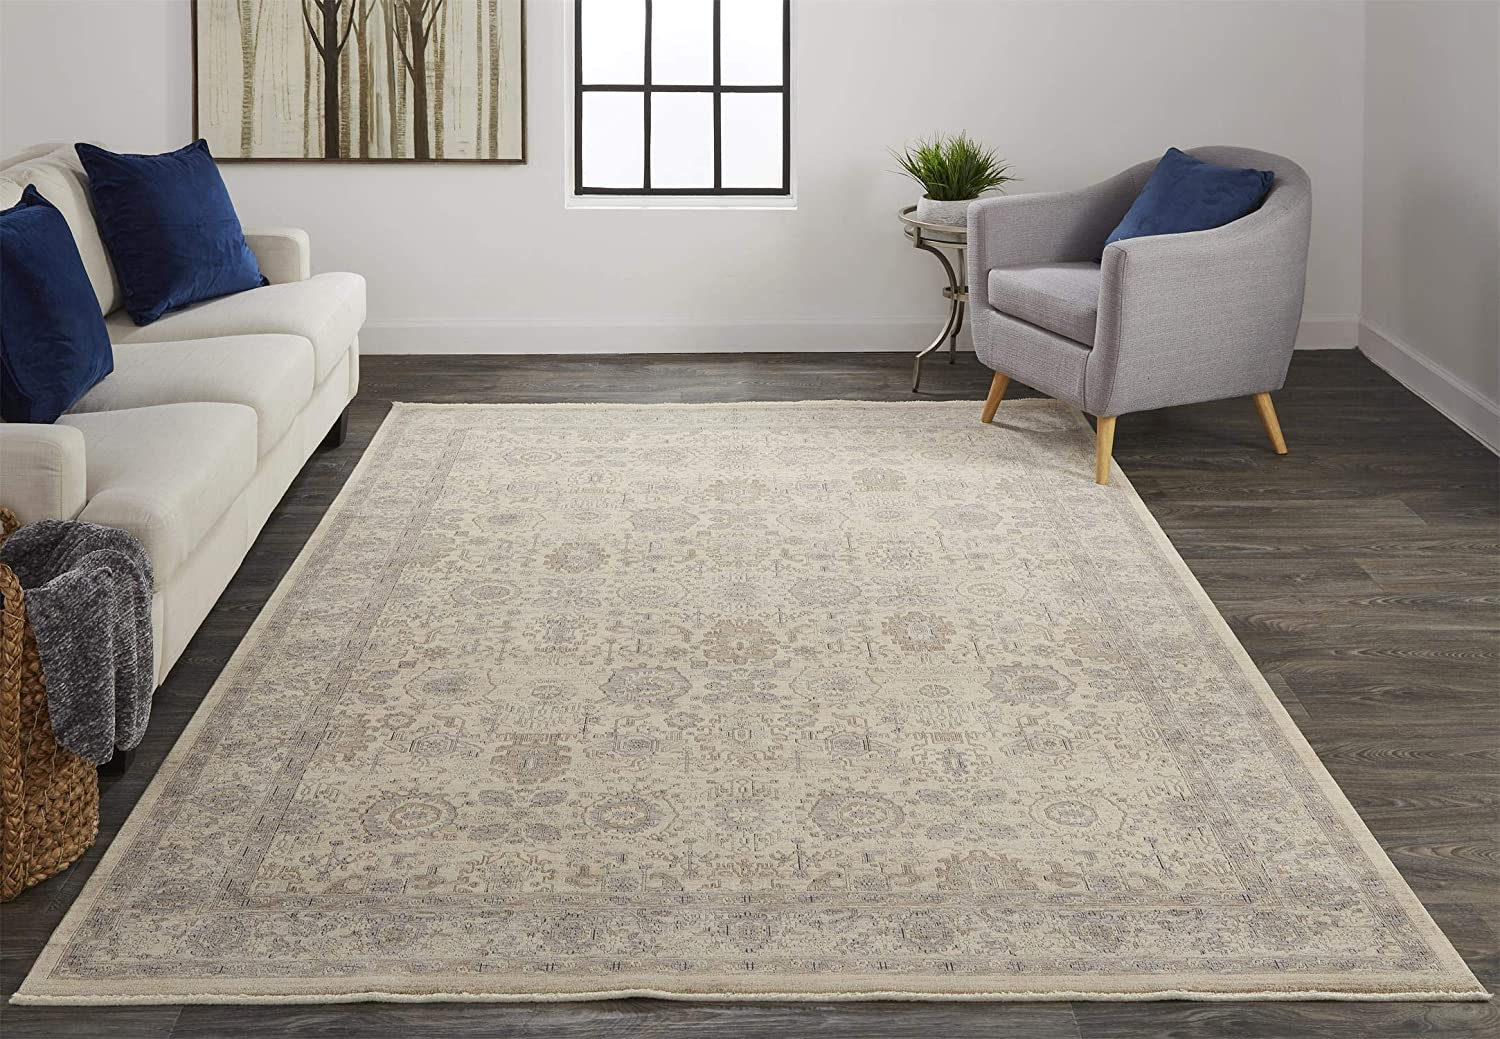 Feizy Rugs - Marquette Traditional Persian Max 49% OFF Beige Rug Warm Style Ranking TOP3